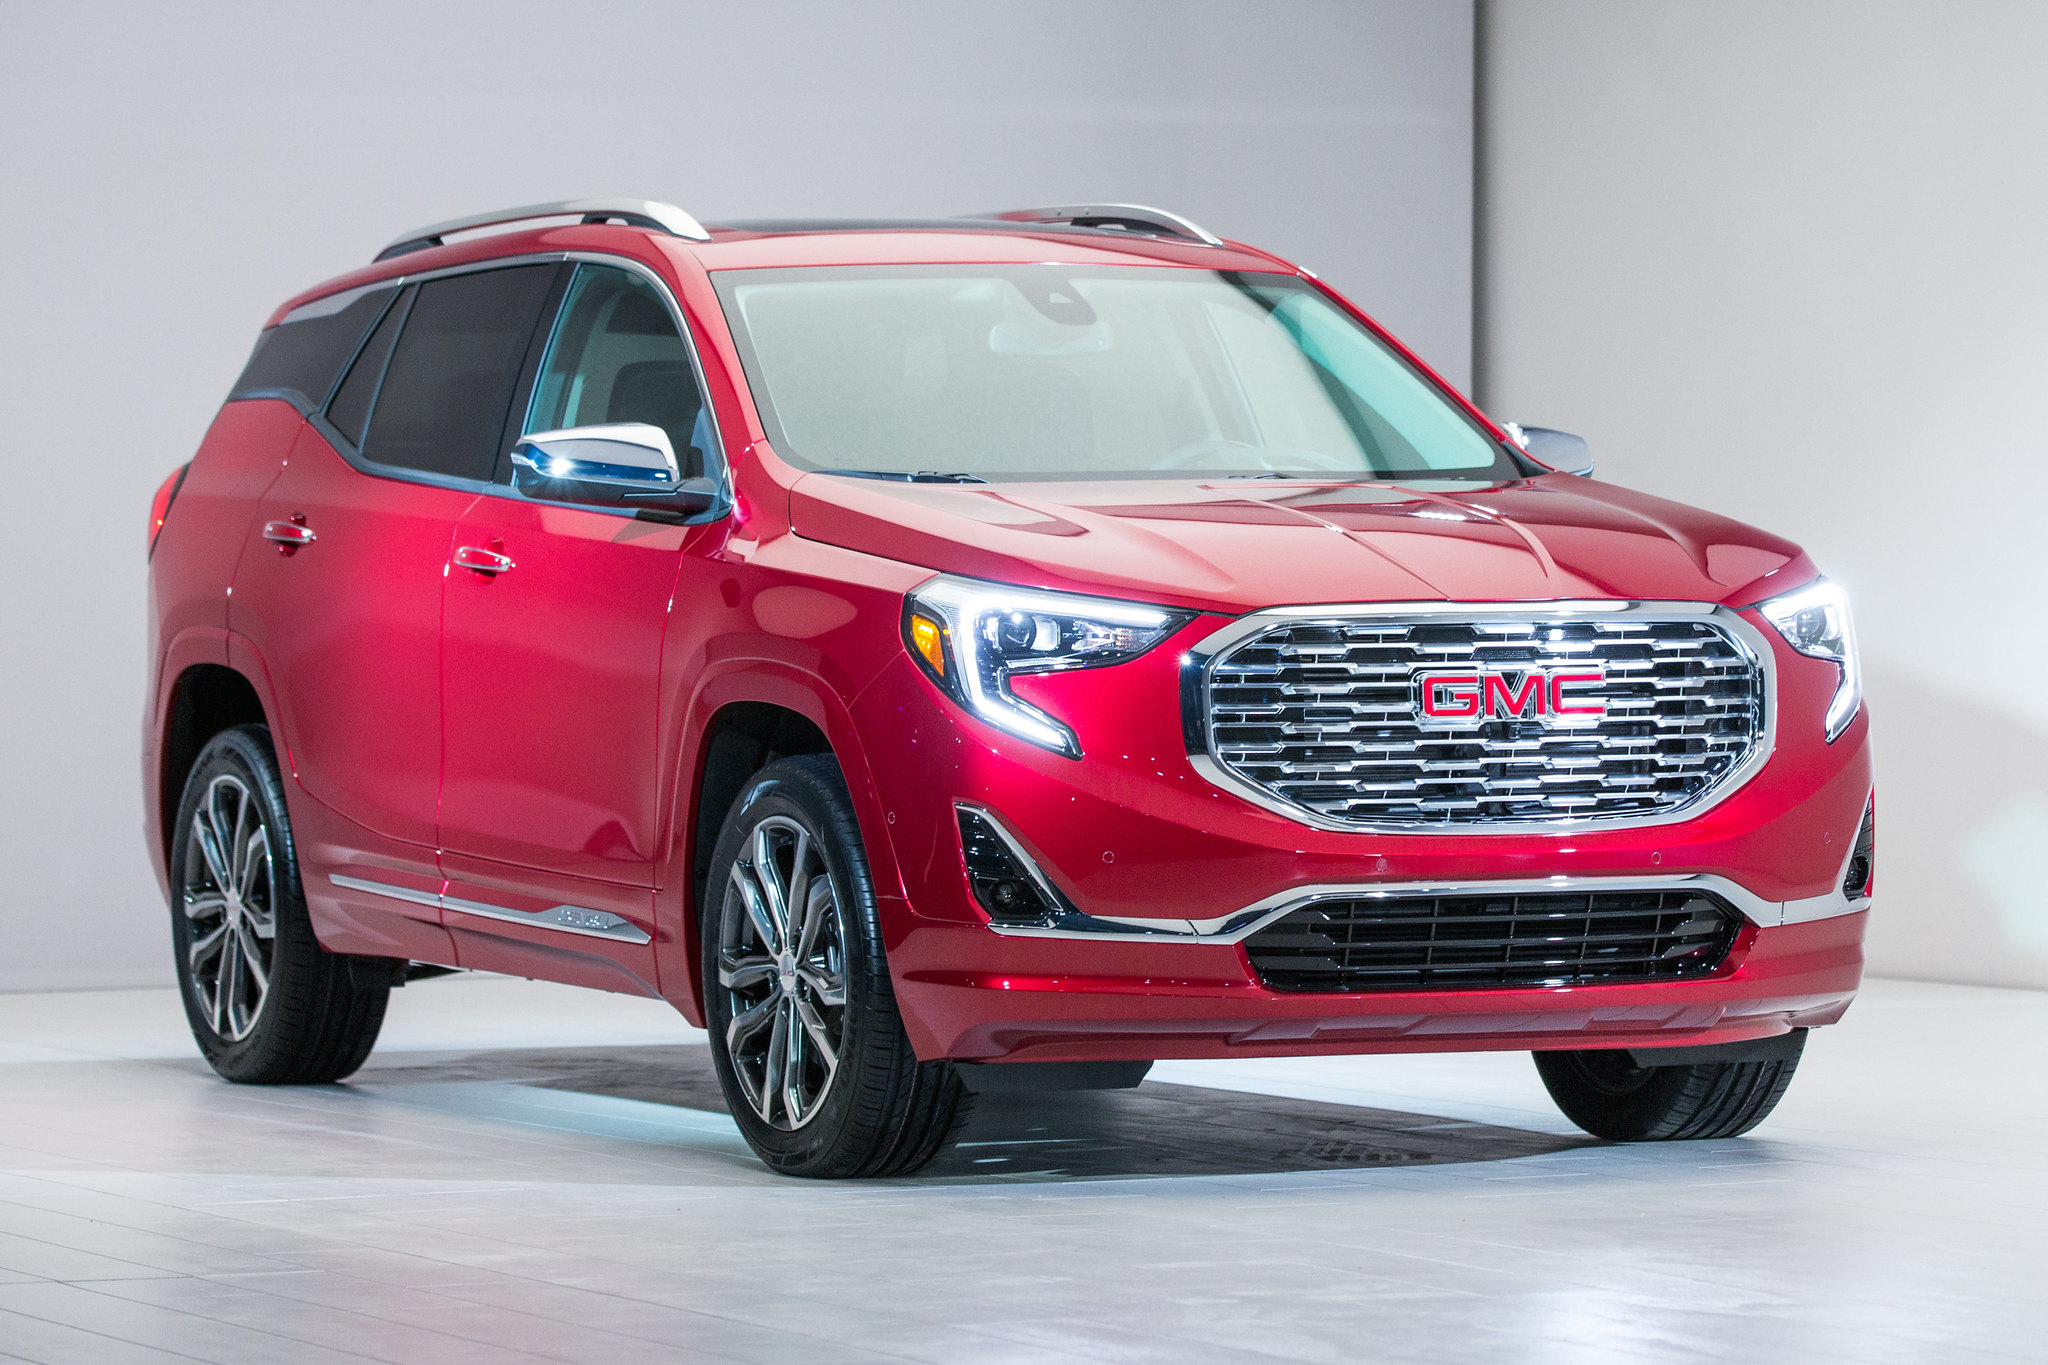 2018 GMC Terrain priced from $25,970